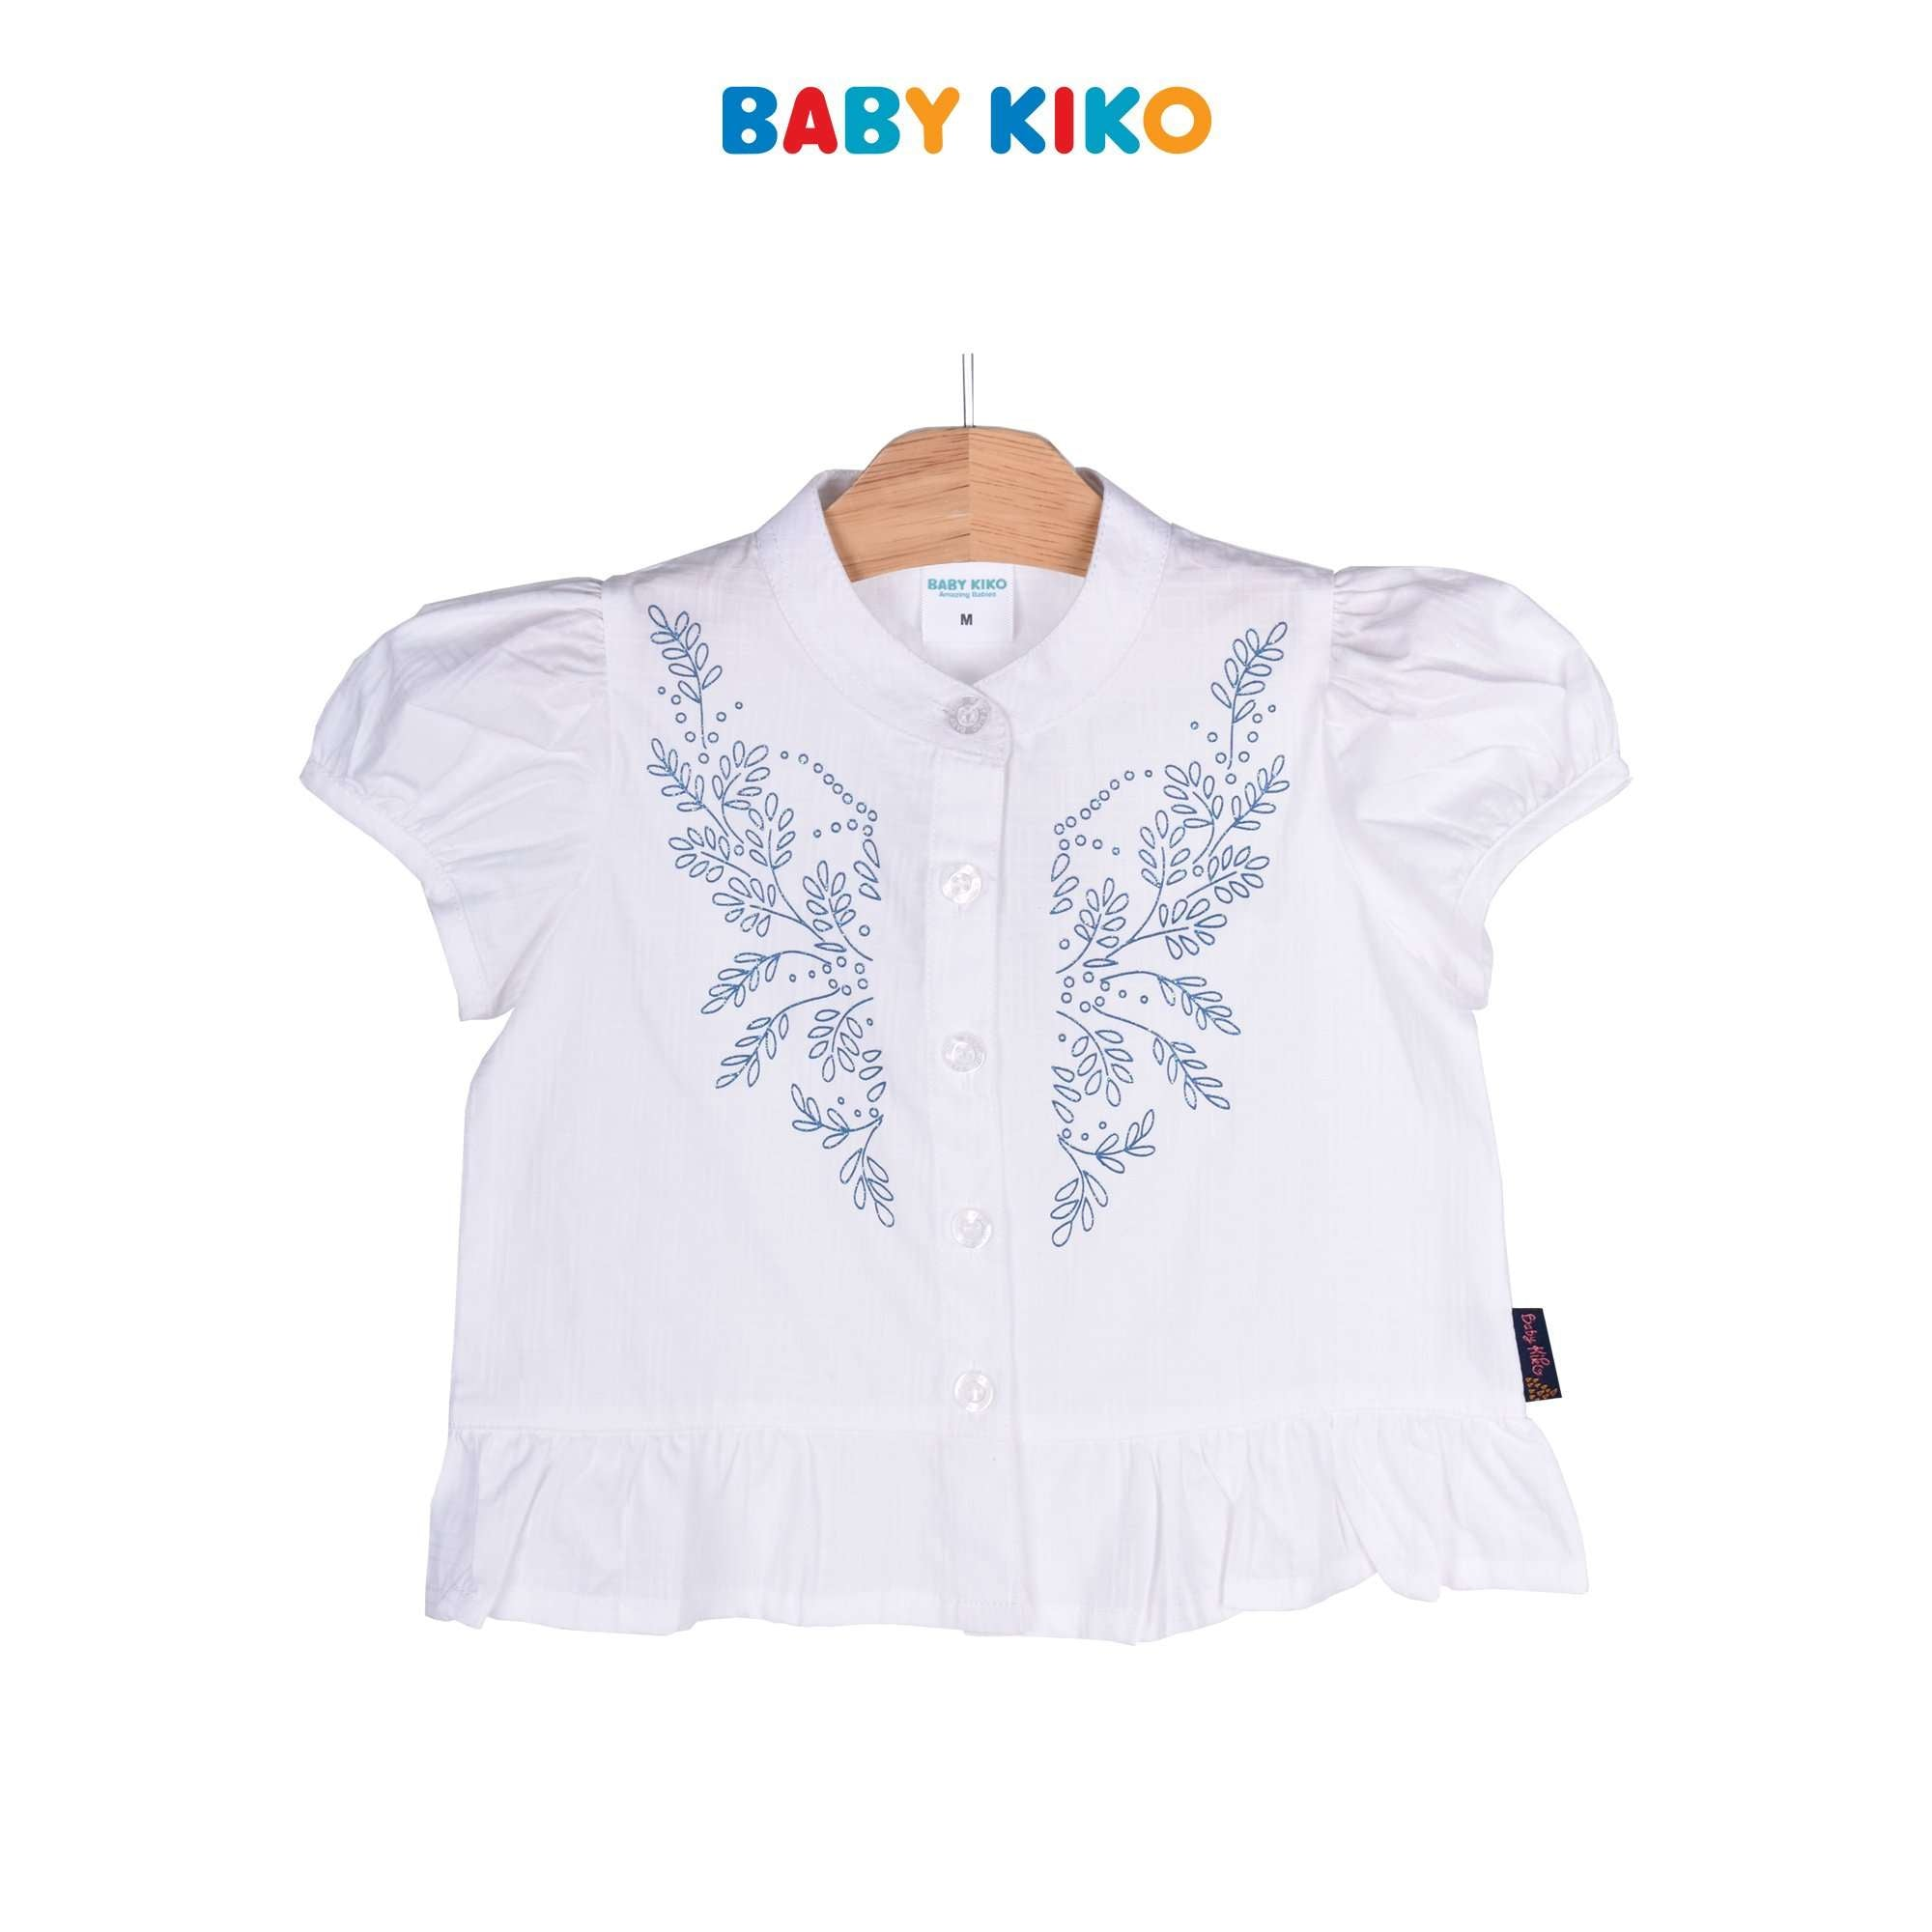 Baby KIKO Toddler Girl Short Sleeve Shirt 335120-141 : Buy Baby KIKO online at CMG.MY